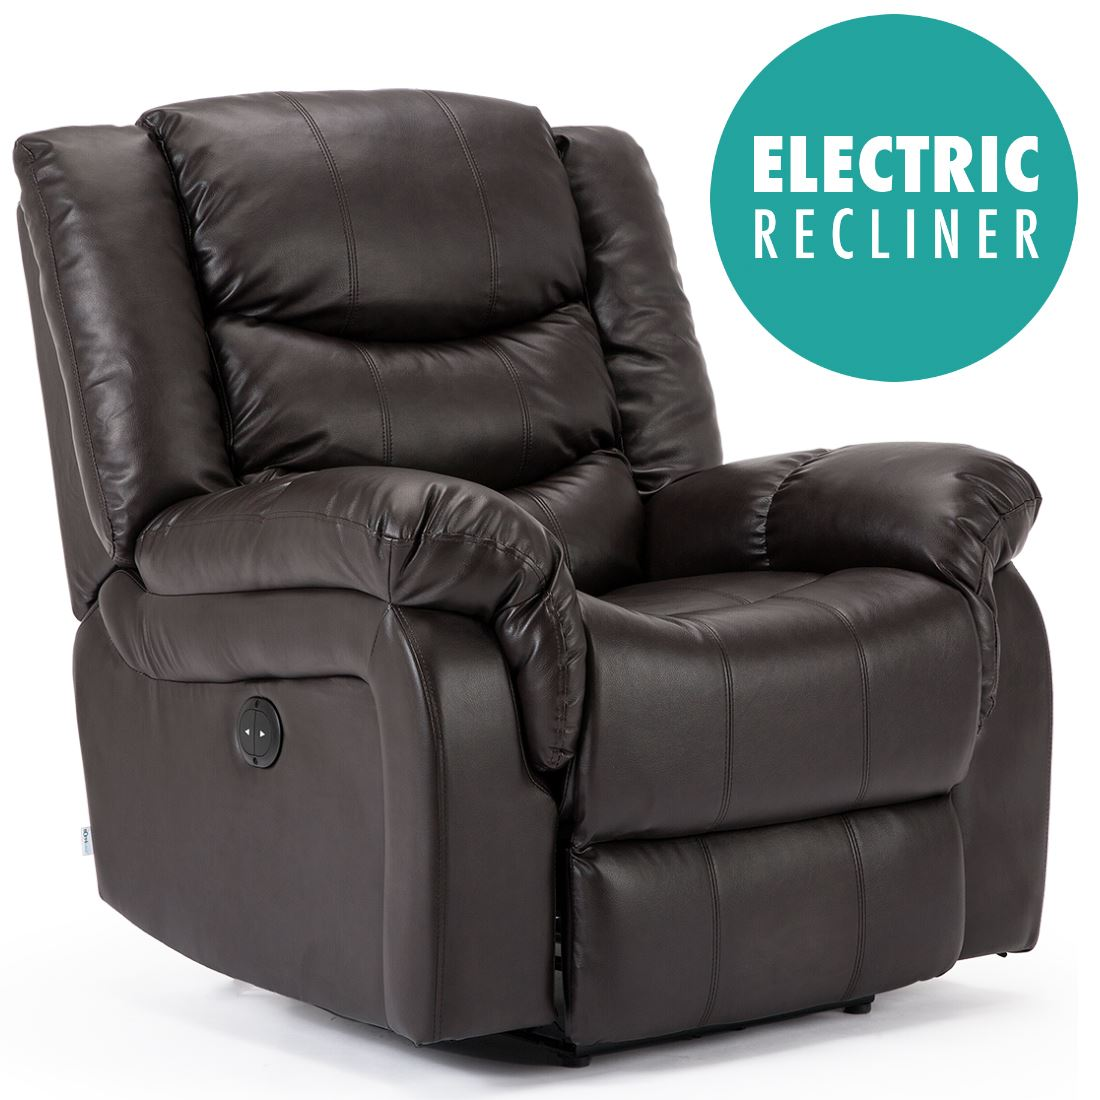 electric recliner sofa not working century prices seattle leather auto armchair home